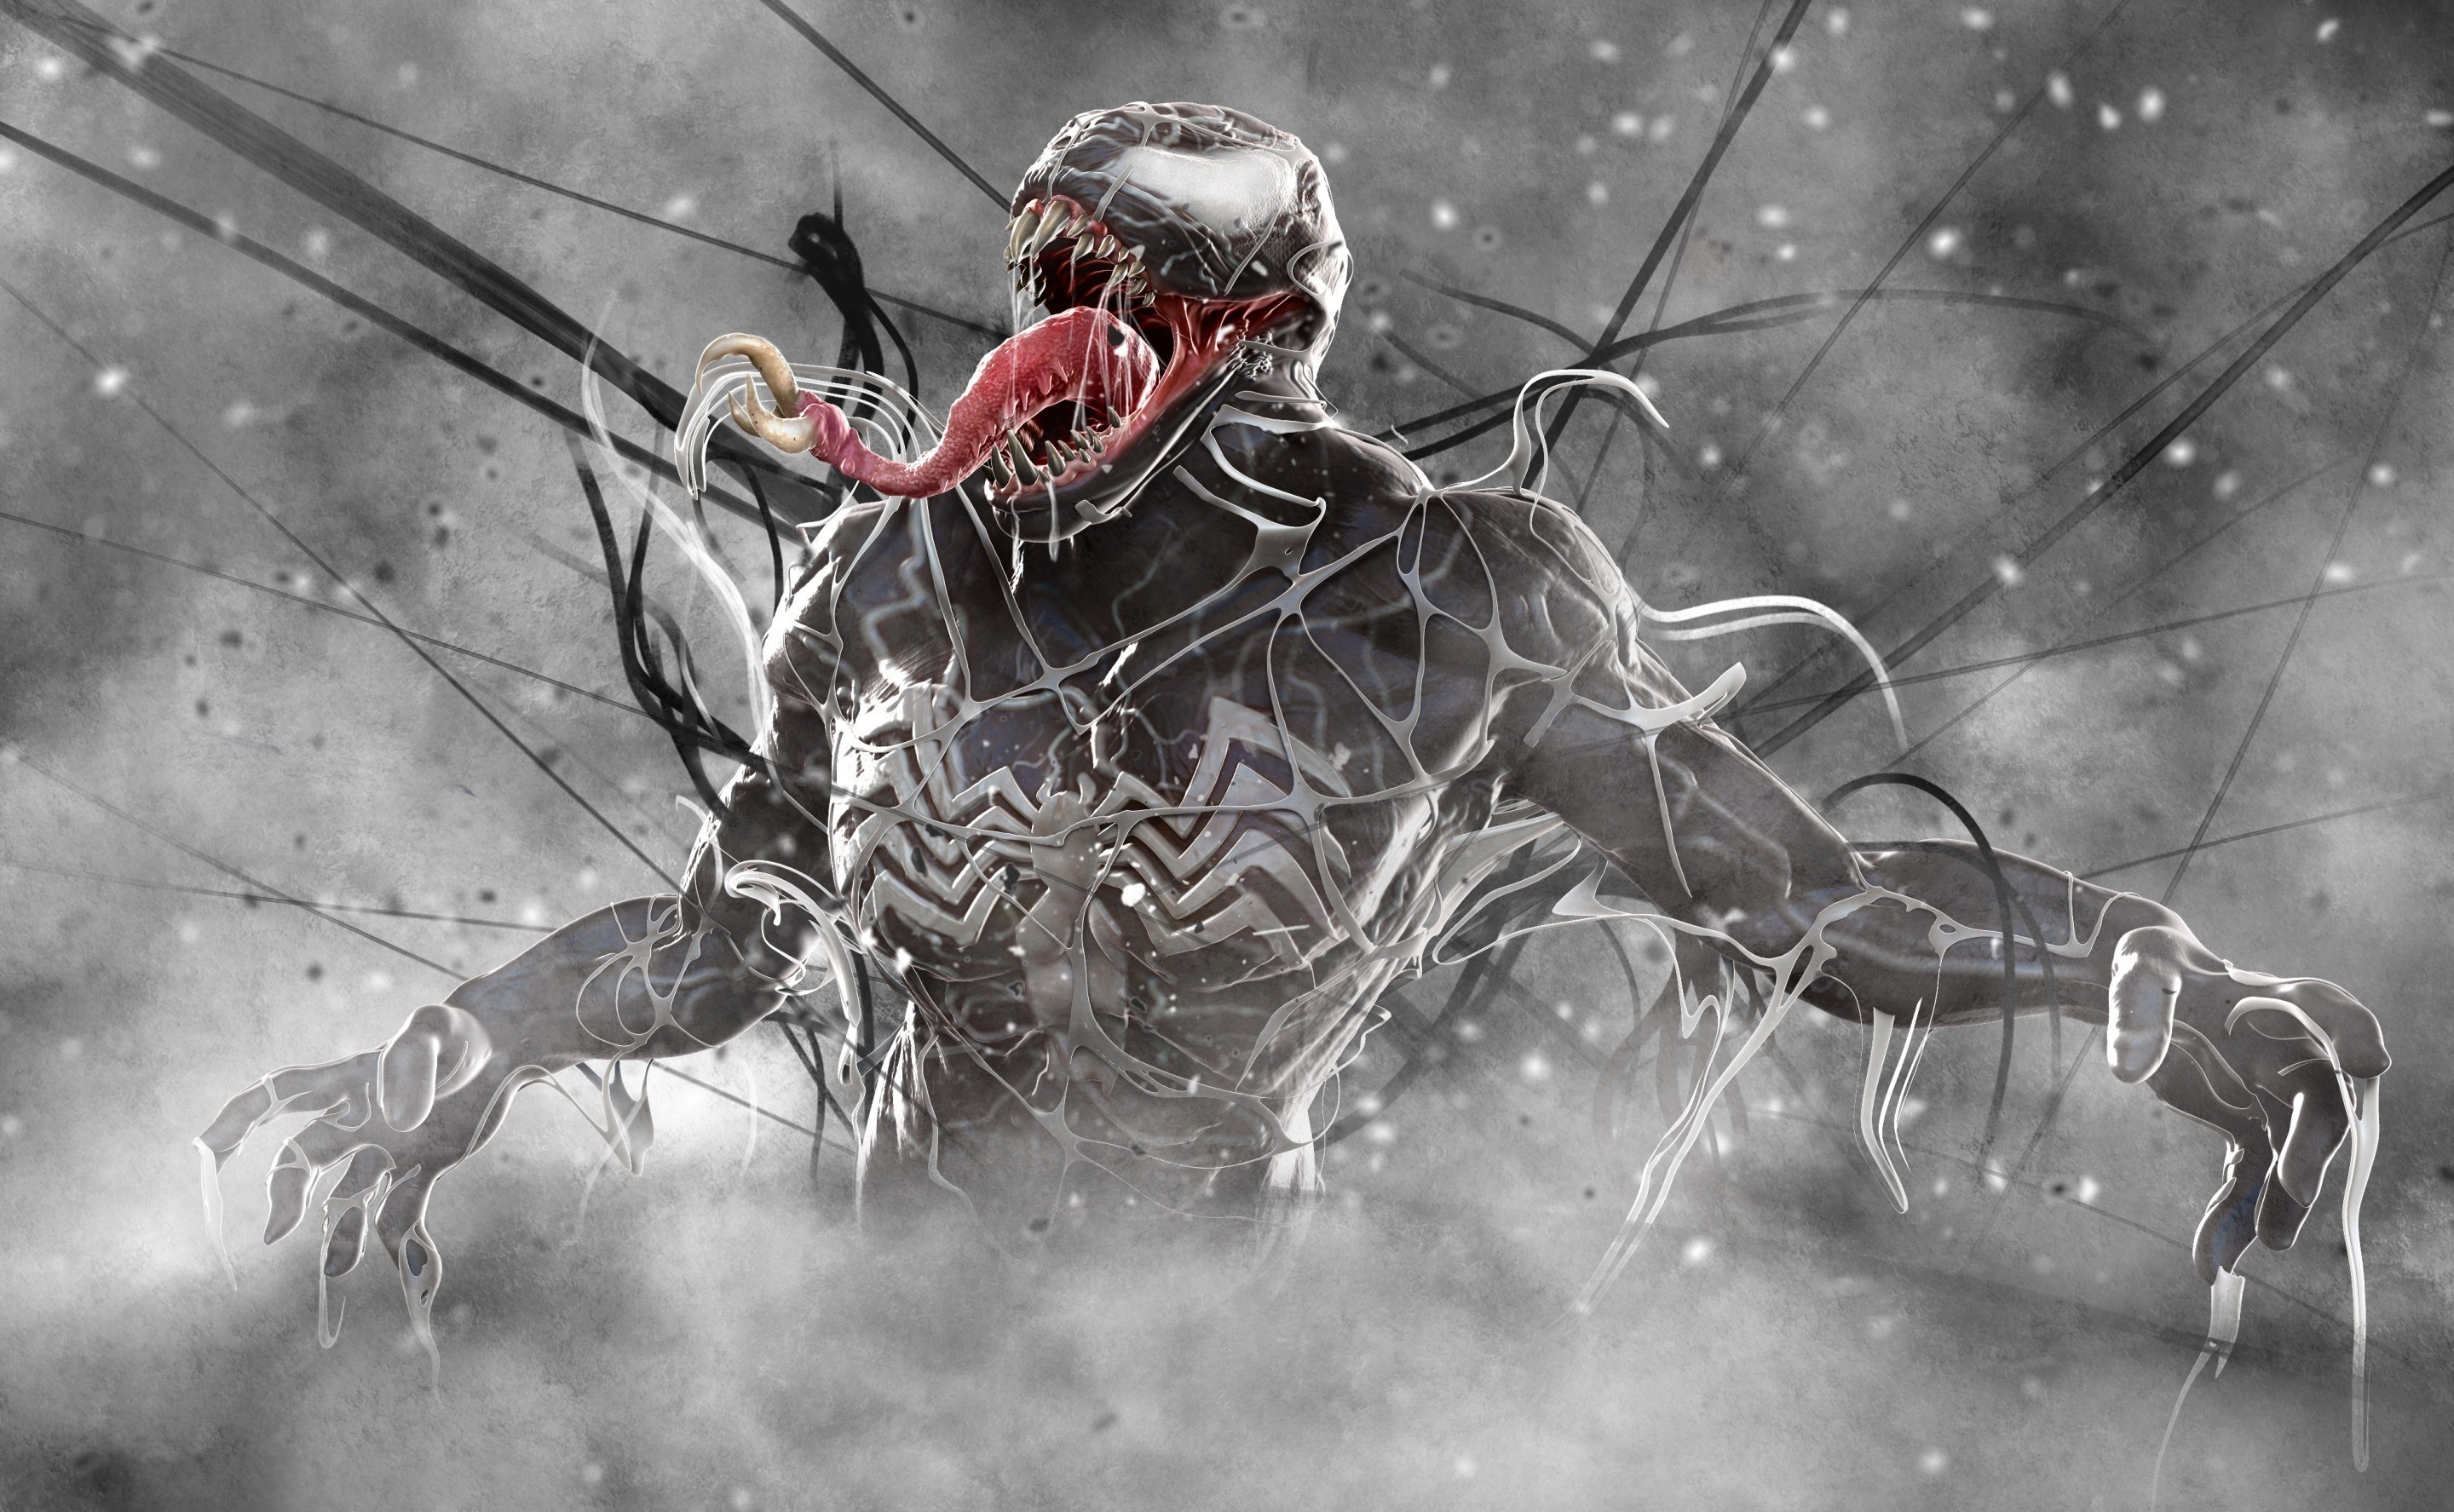 Venom Band Hd Wallpaper 60 Images